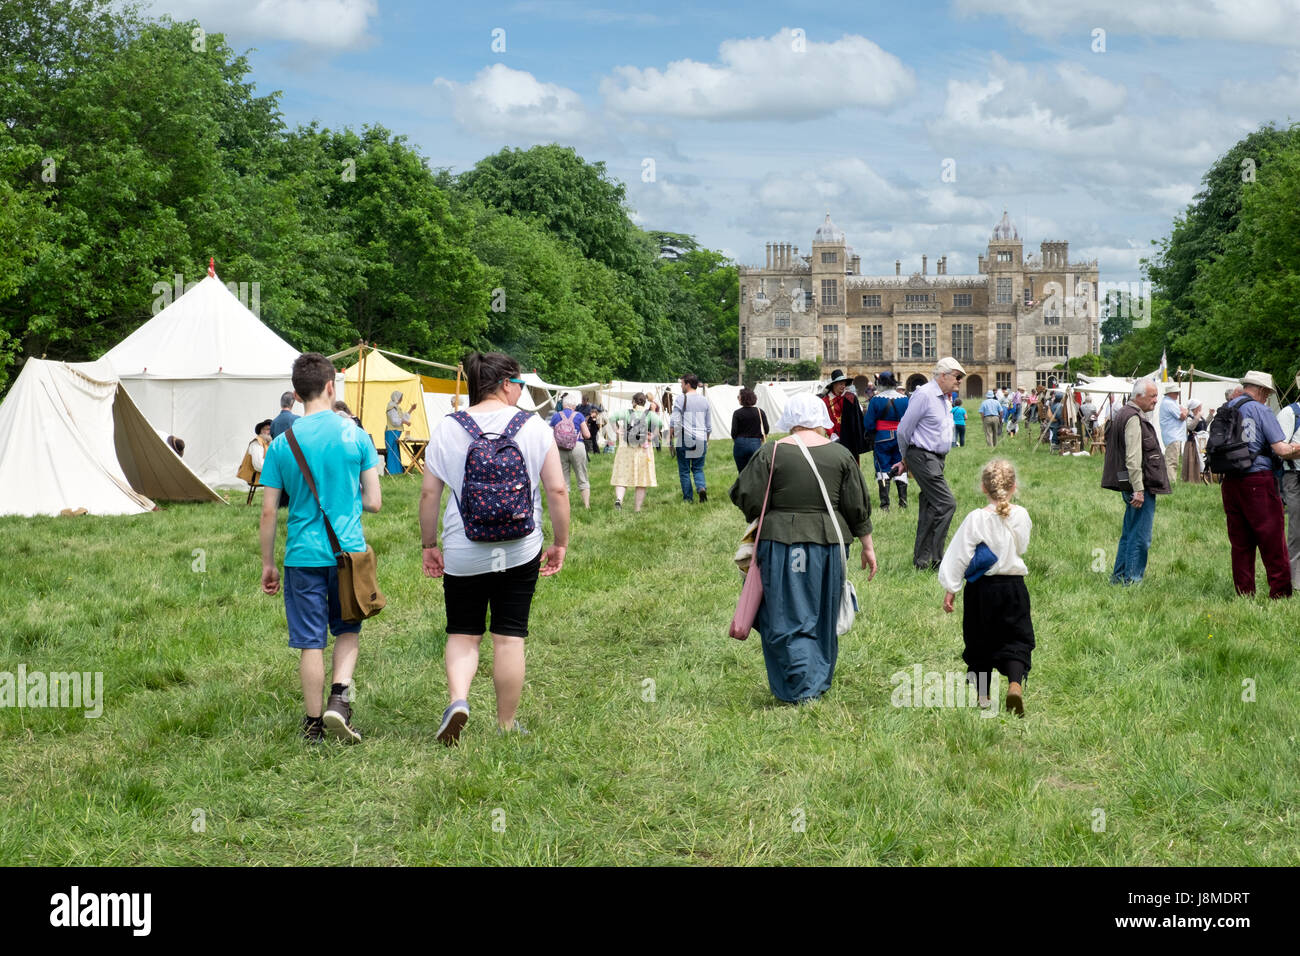 Visitors at a 17th century re-enactment event staged by the Sealed Knot at Charlton Park near Malmesbury, Wiltshire,UK. - Stock Image